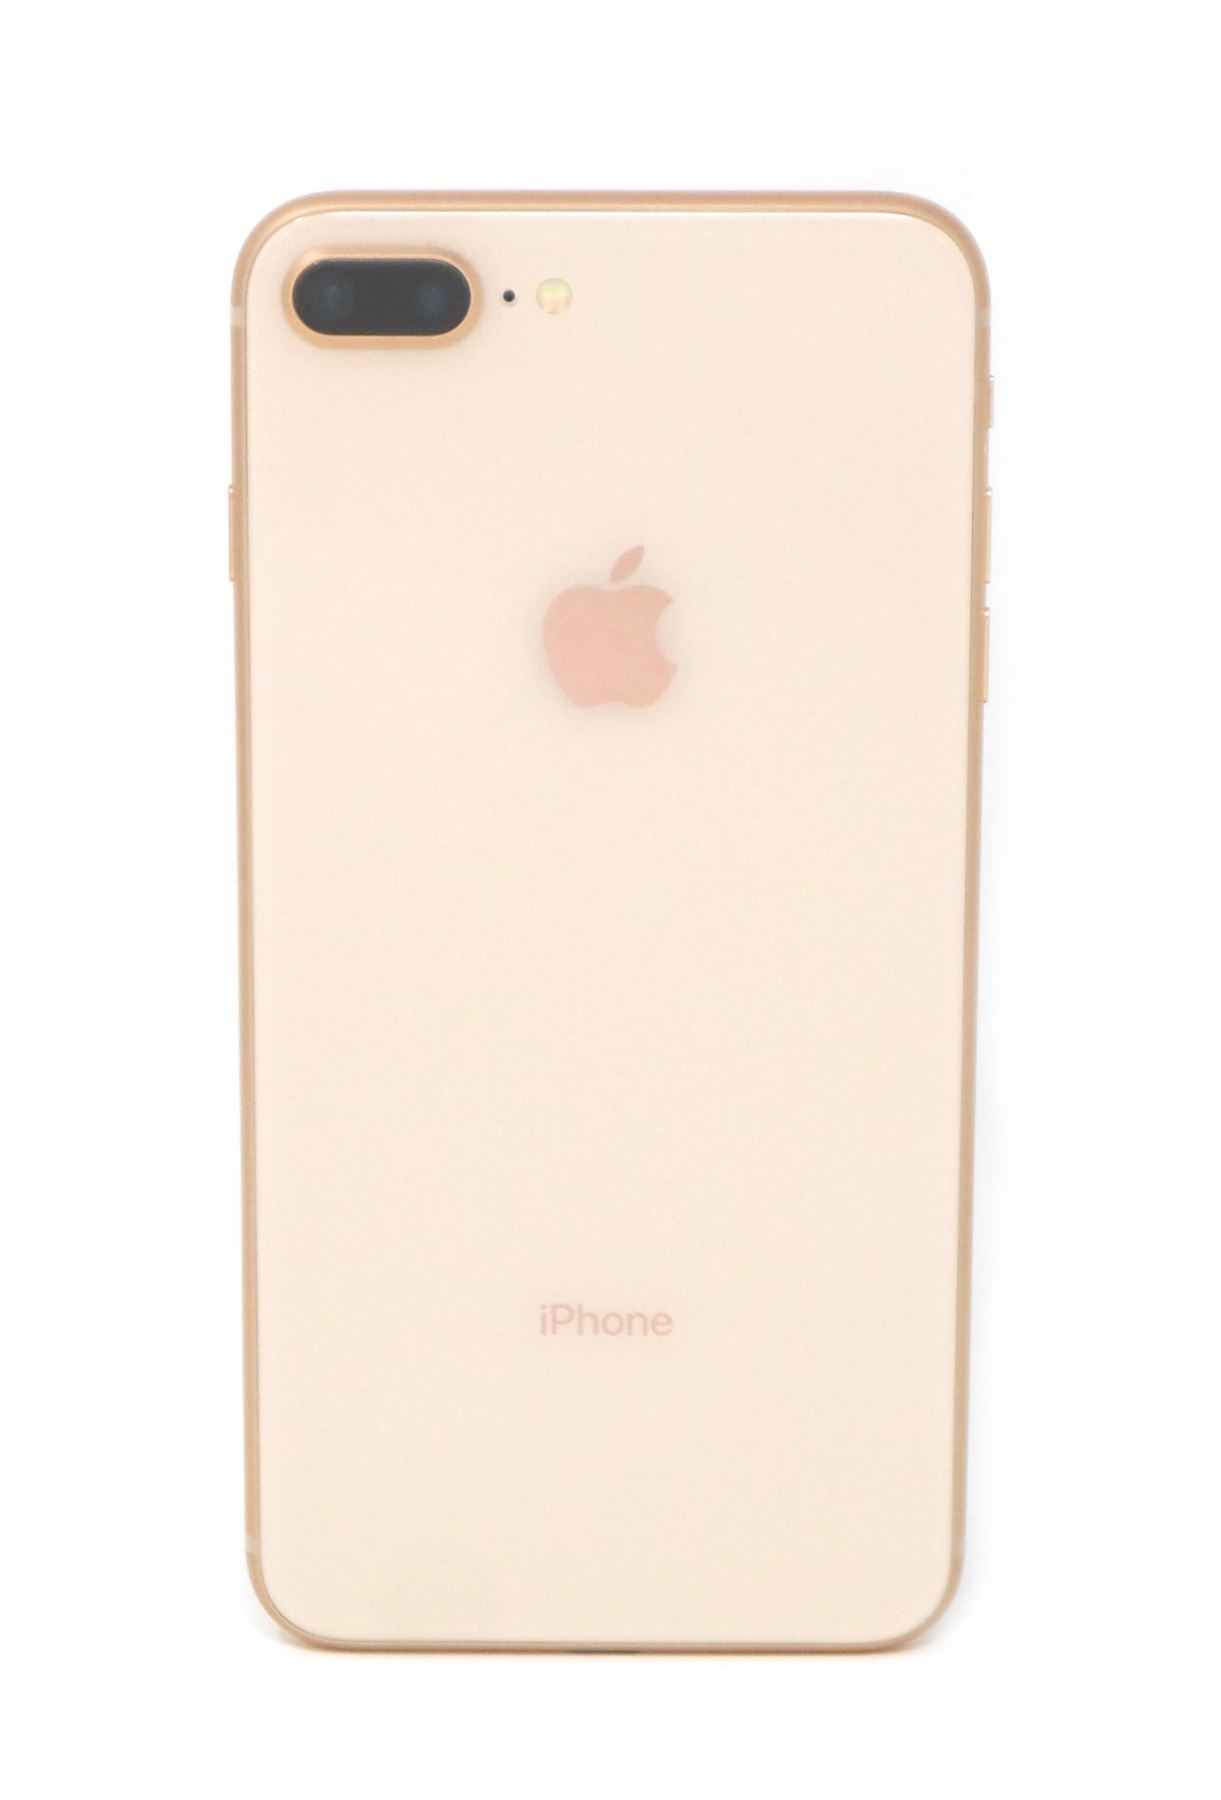 Apple-iPhone-8-Plus-Carrier-Option-AT-amp-T-T-Mobile-Verizon-Unlocked-64-256GB-New thumbnail 11